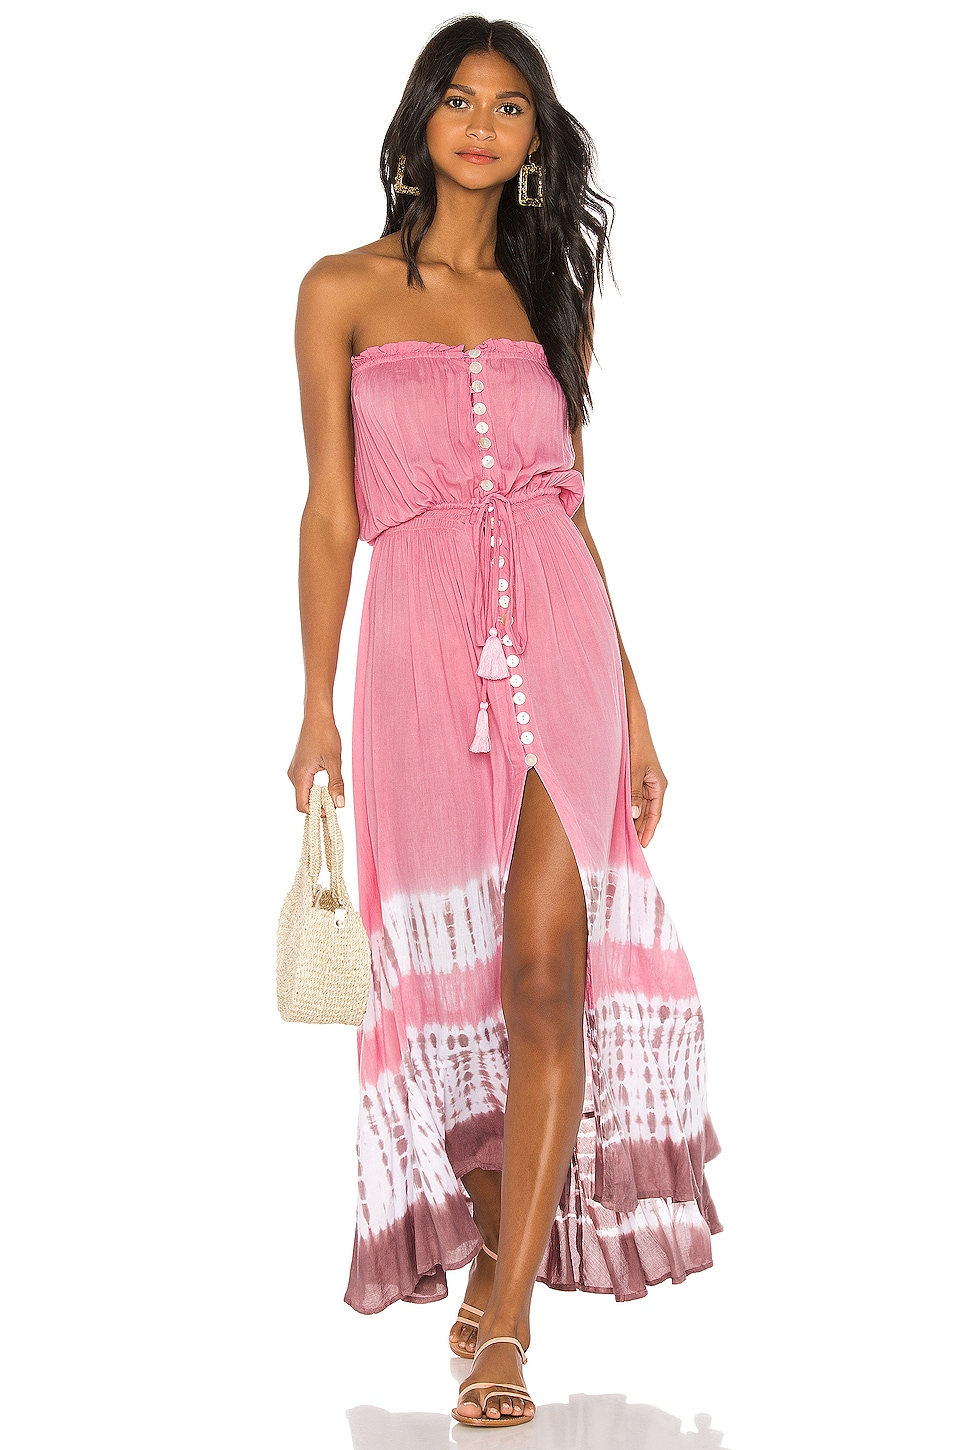 Ryden Dress                   Tiare Hawaii                                                                                                                             CA$ 180.47 7